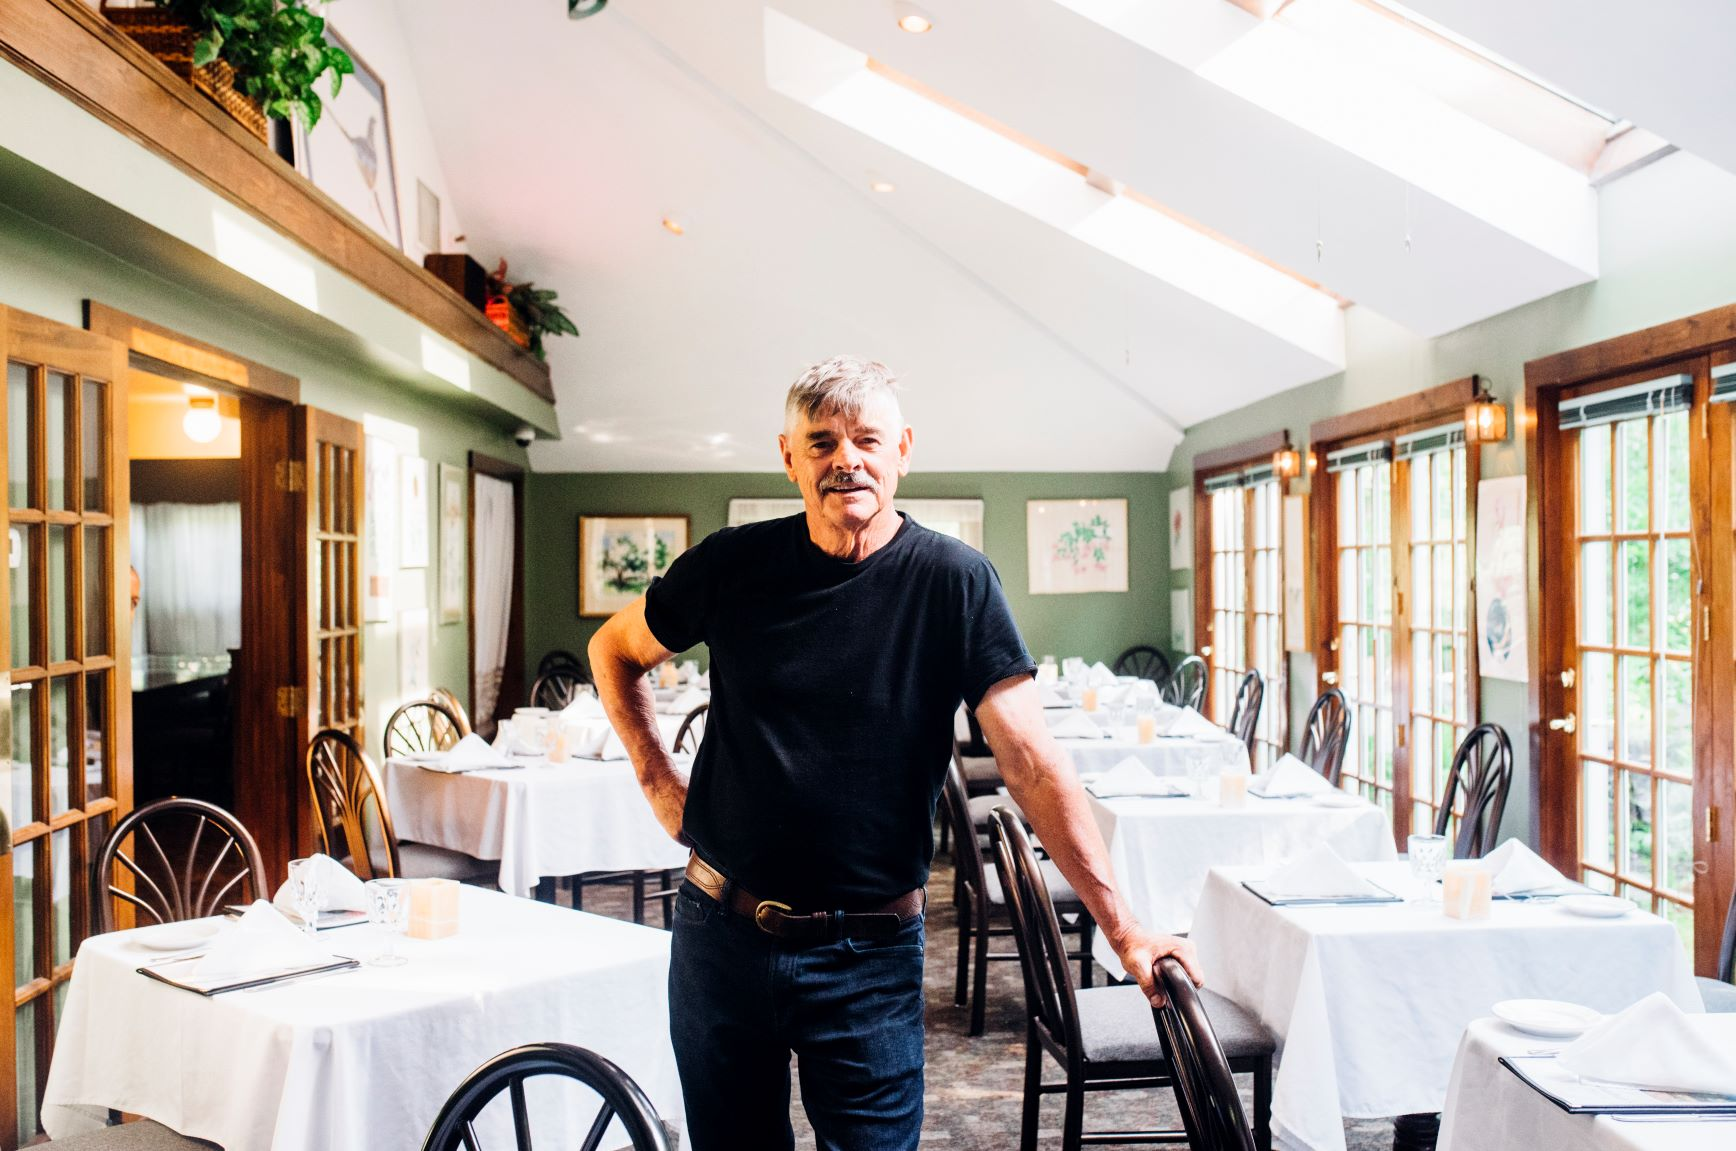 Jonathan West, owner of Jonathan's Restaurant in Ogunquit, ME. Photo credit: Lauryn Hottinger.